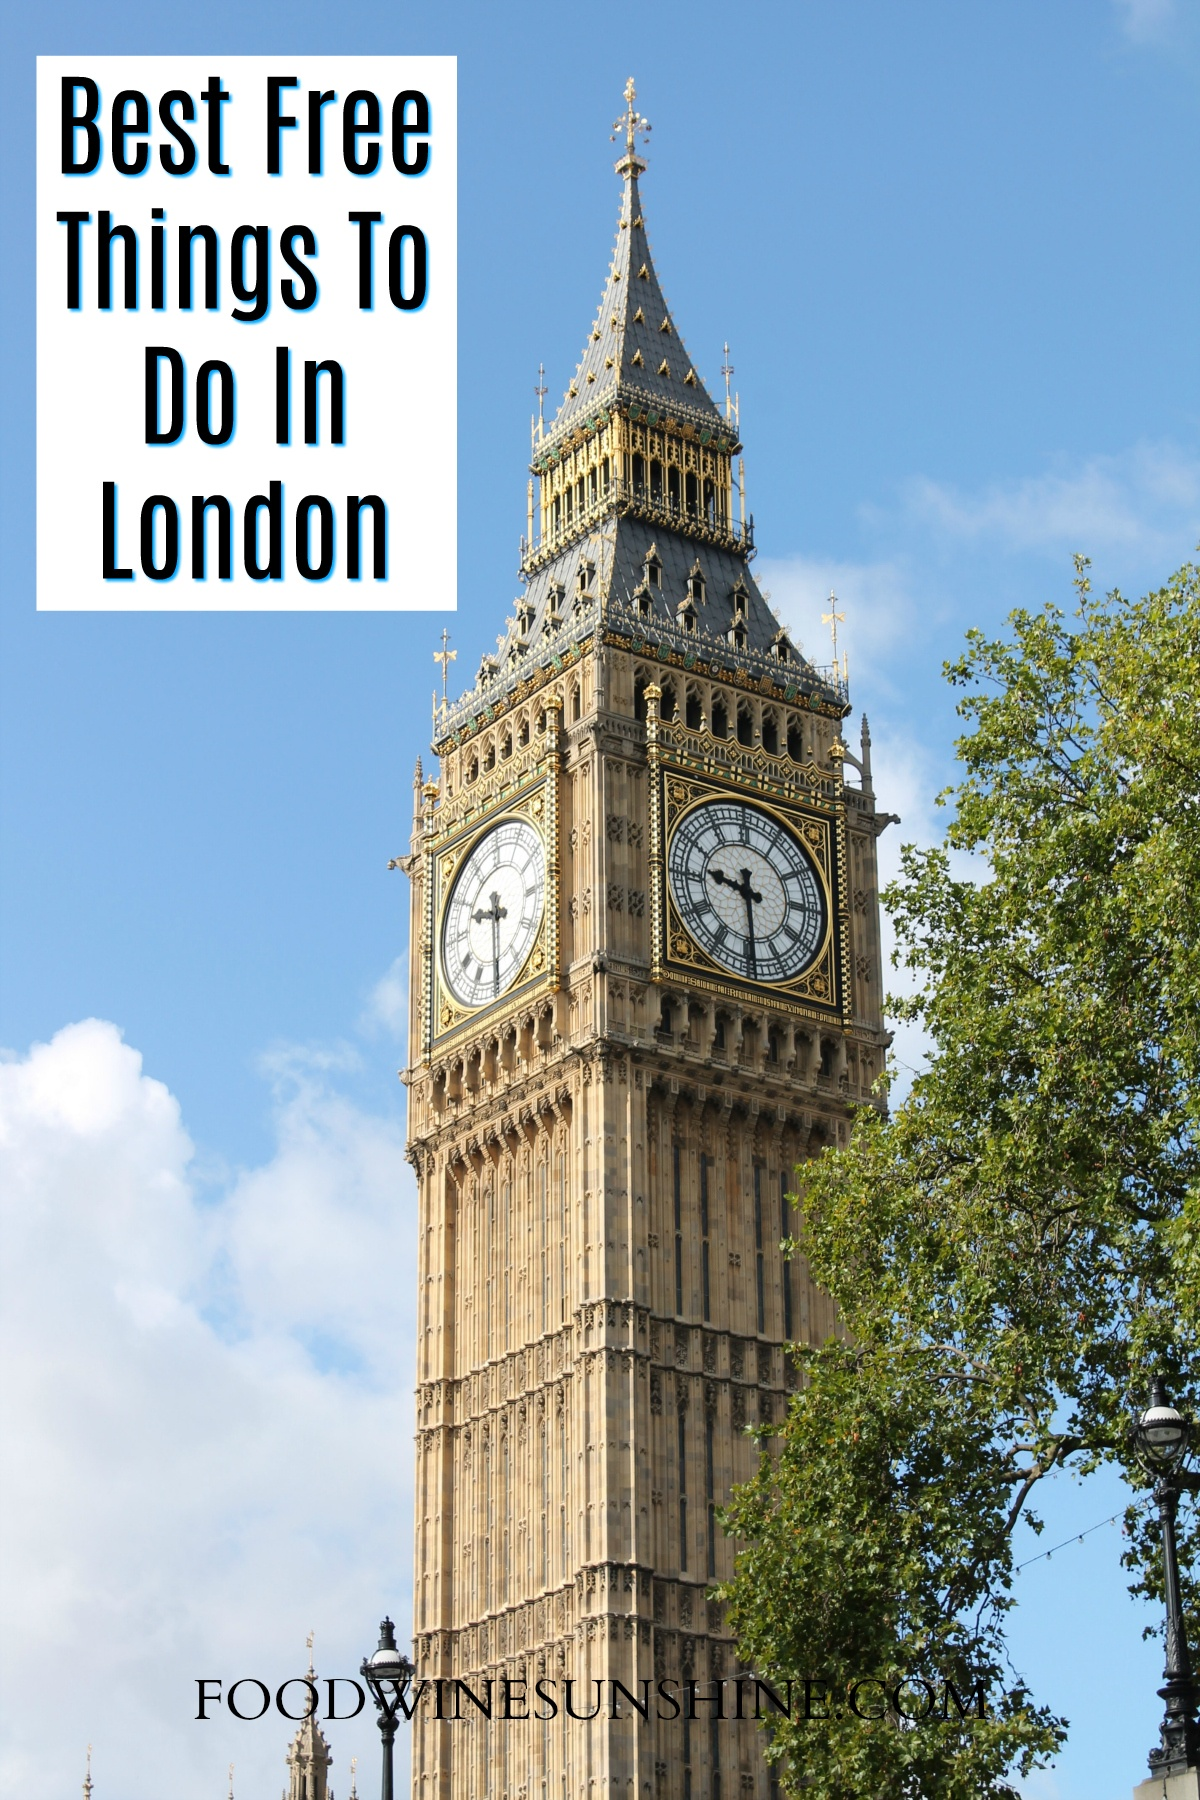 Top 17 Free Things To Do In London | London England is over 2000 years old, with all that history, there are plenty of Free Things To Do In London. Be sure to add this list of free things to do in London to your travel itinerary. For more travel tips and budget travel plans visit foodwinesunshine.com